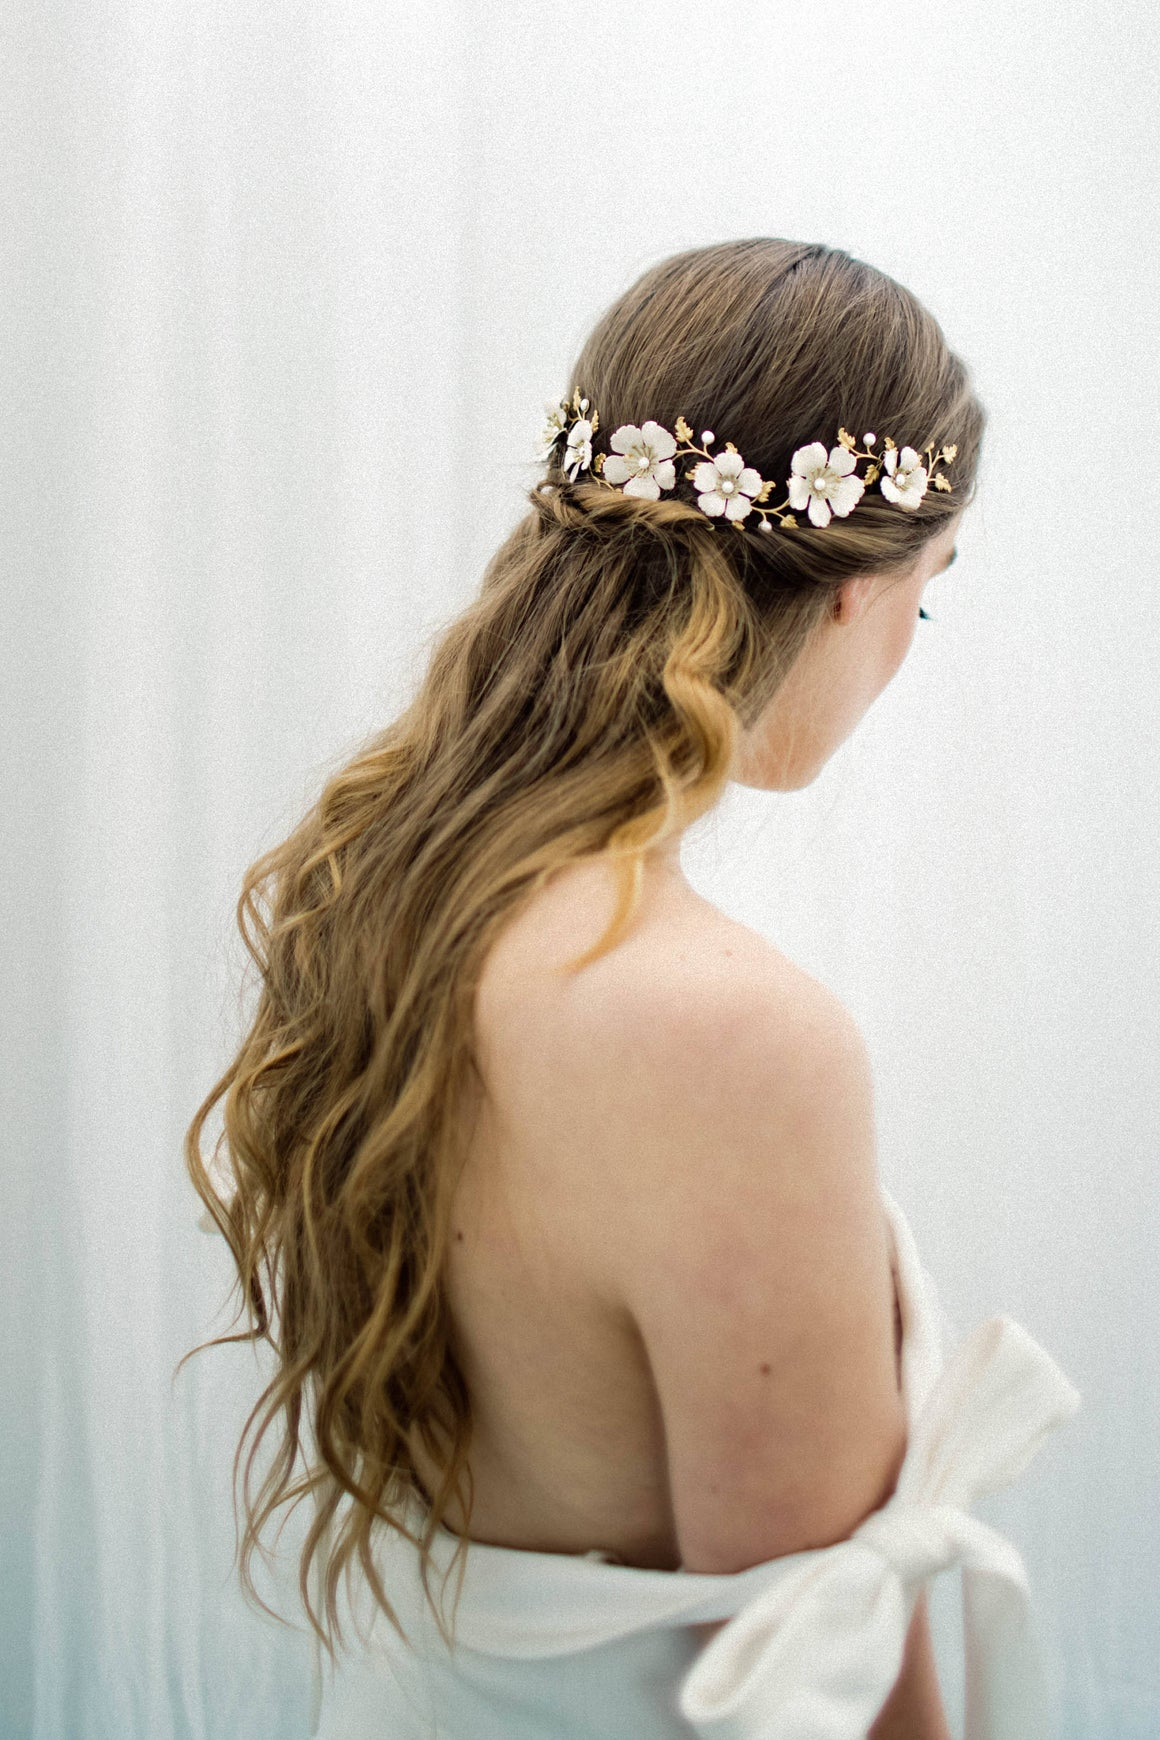 Bride wearing a wrap headpiece made of gold leaves and ivory flowers